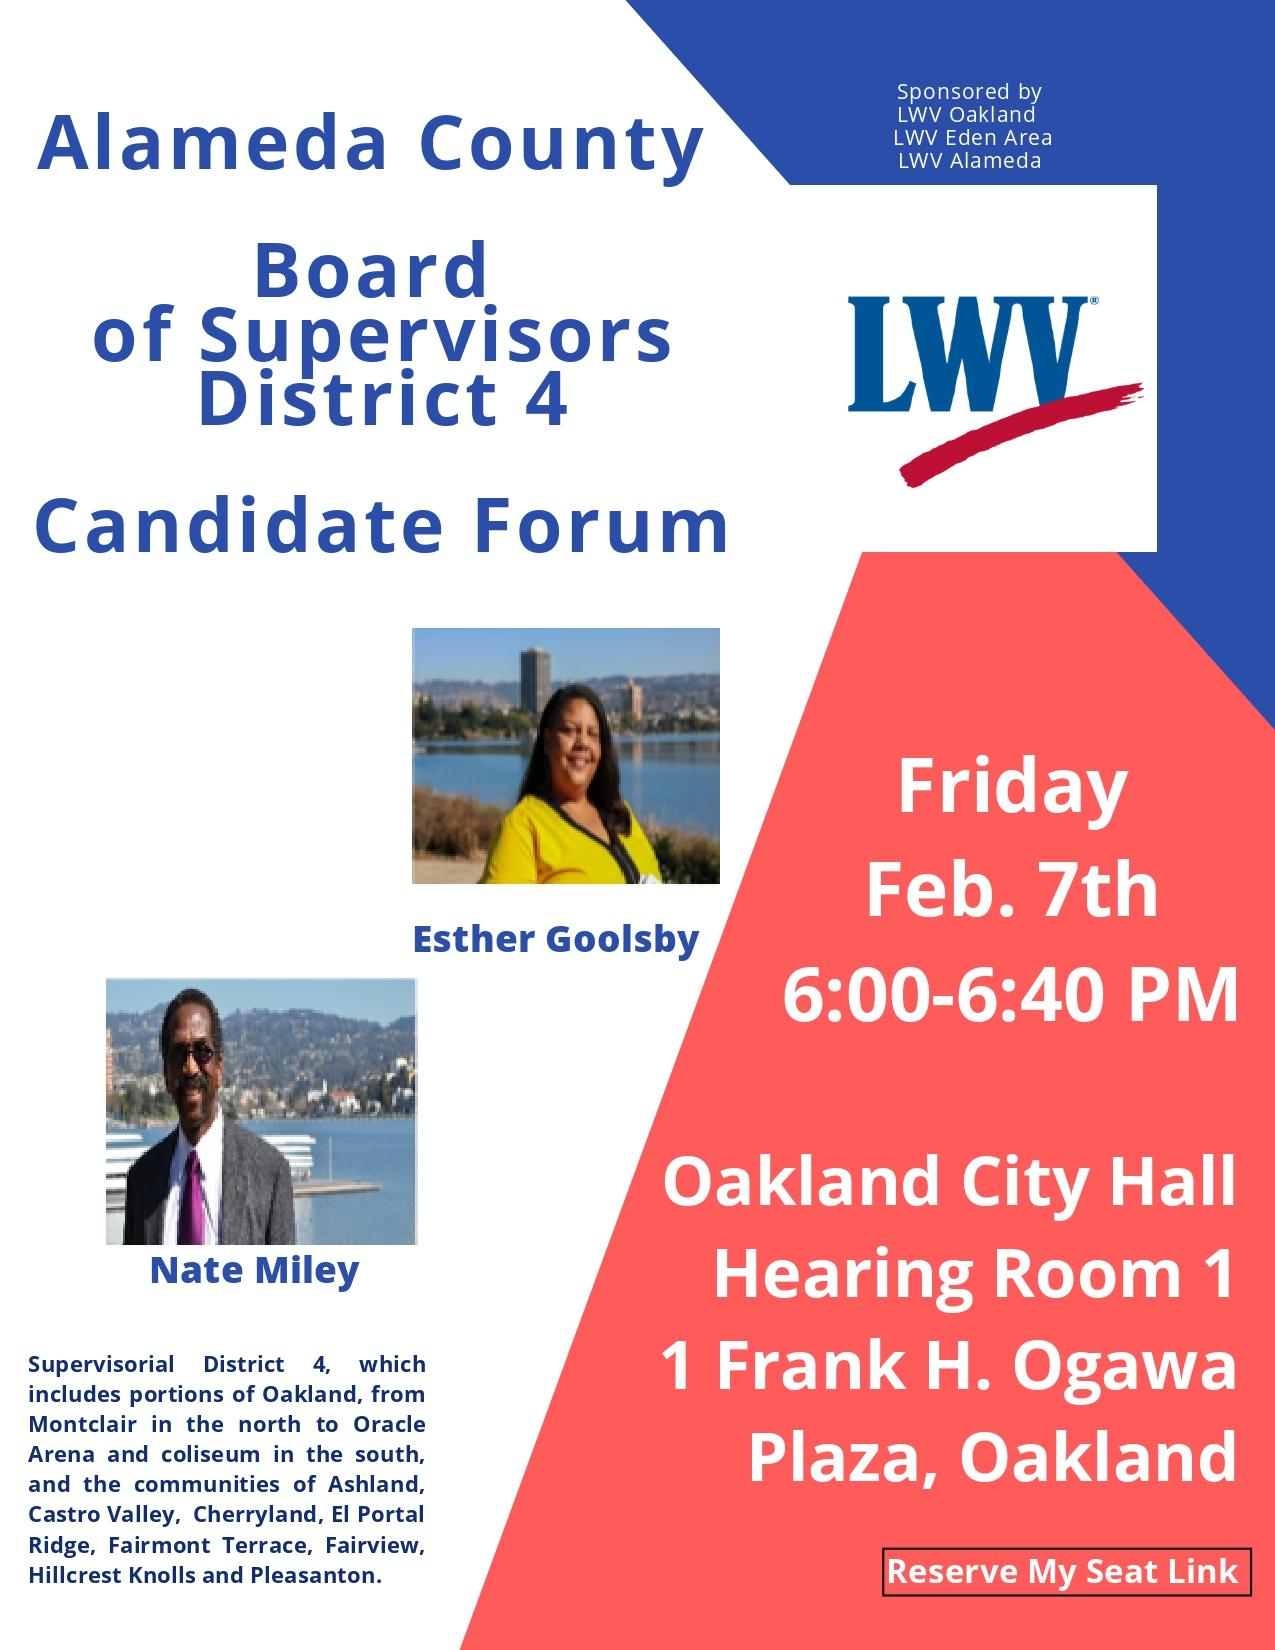 Candidate Forum February 7